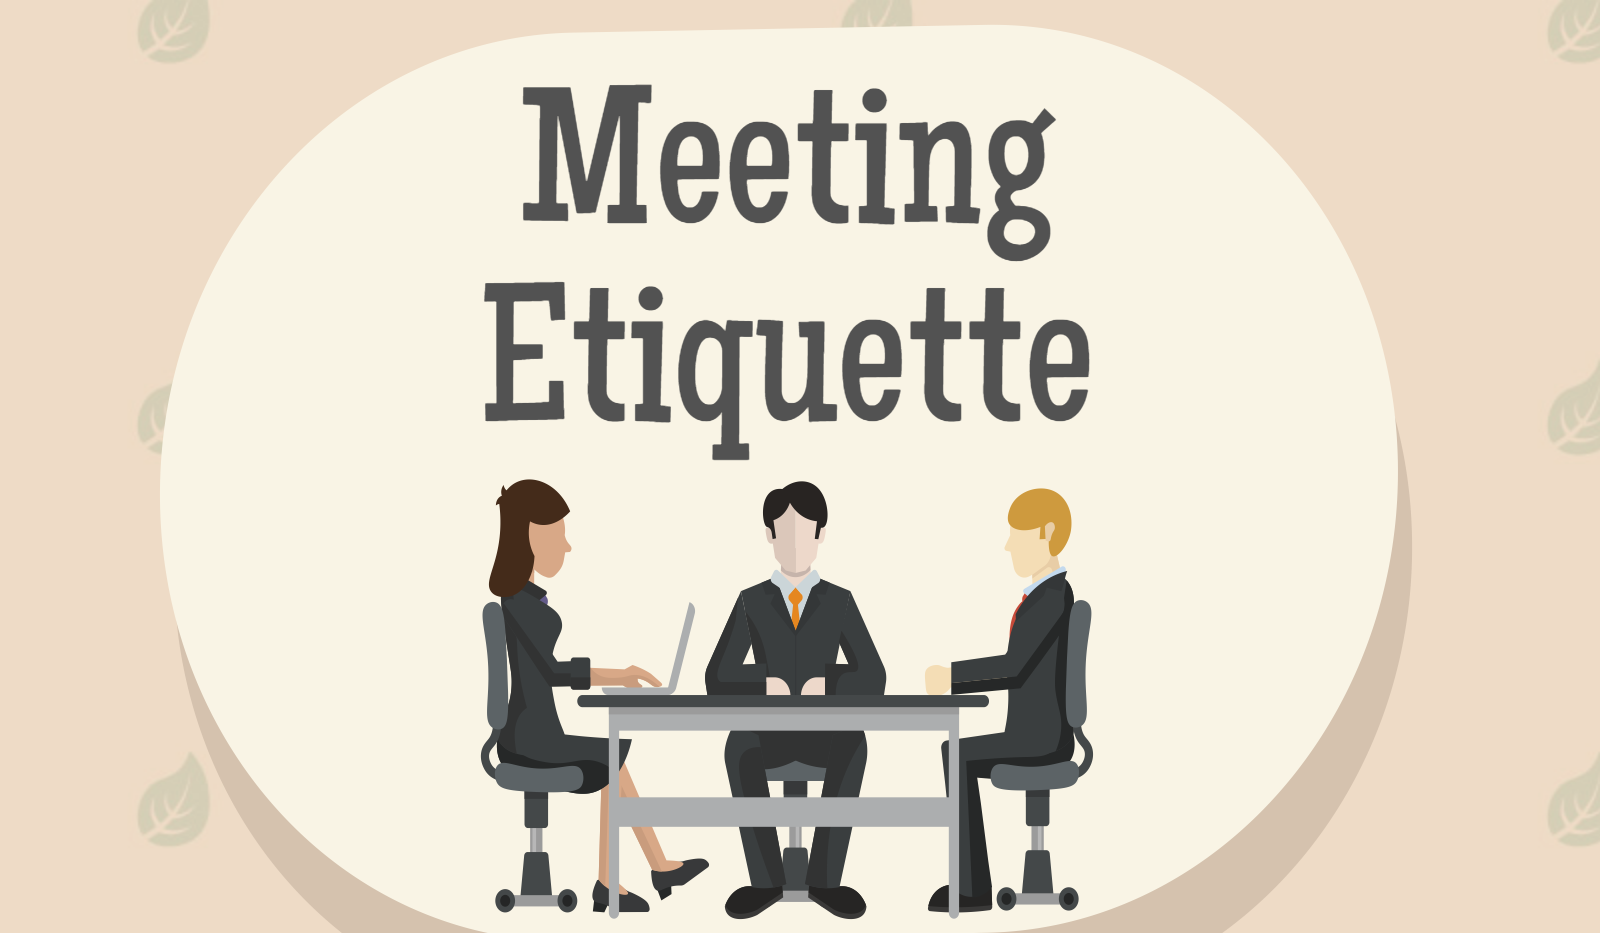 10 Rules of Etiquette Everyone Should Know (and Follow!)